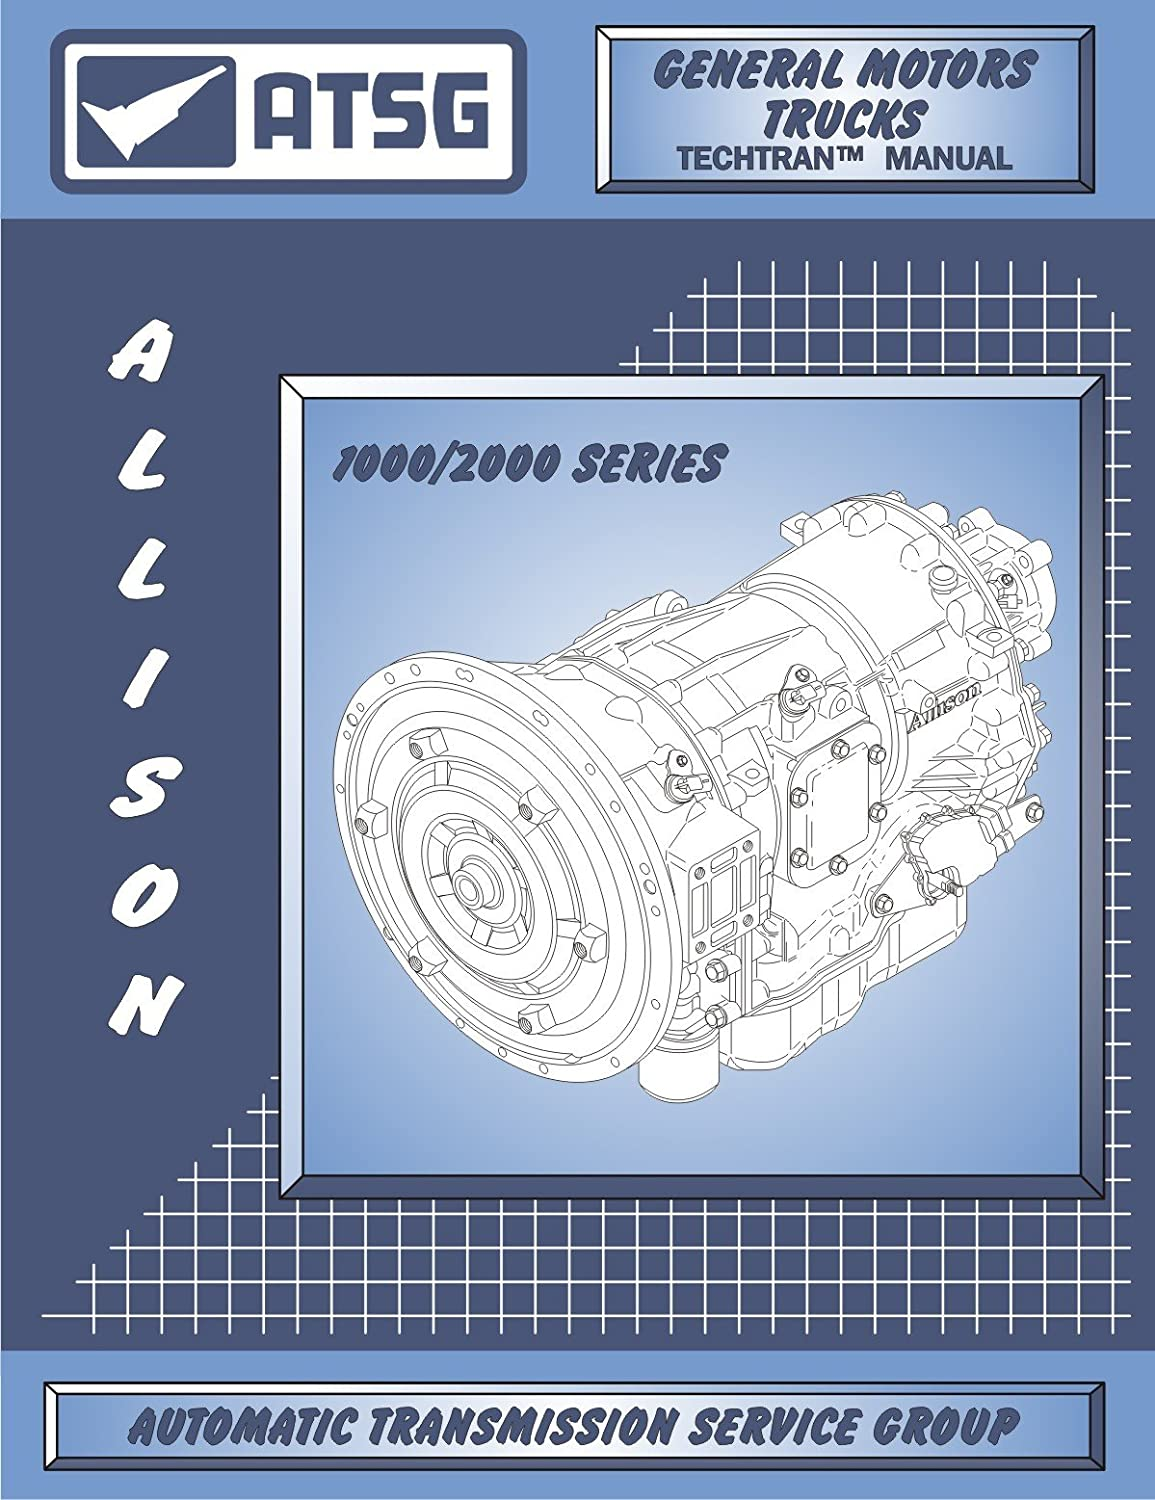 Amazon.com: ATSG Allison 1000/2000 Transmission Repair Manual (Allison 1000  Transmission - Allison 1000 Filter - Allison 1000 Internal): Automotive